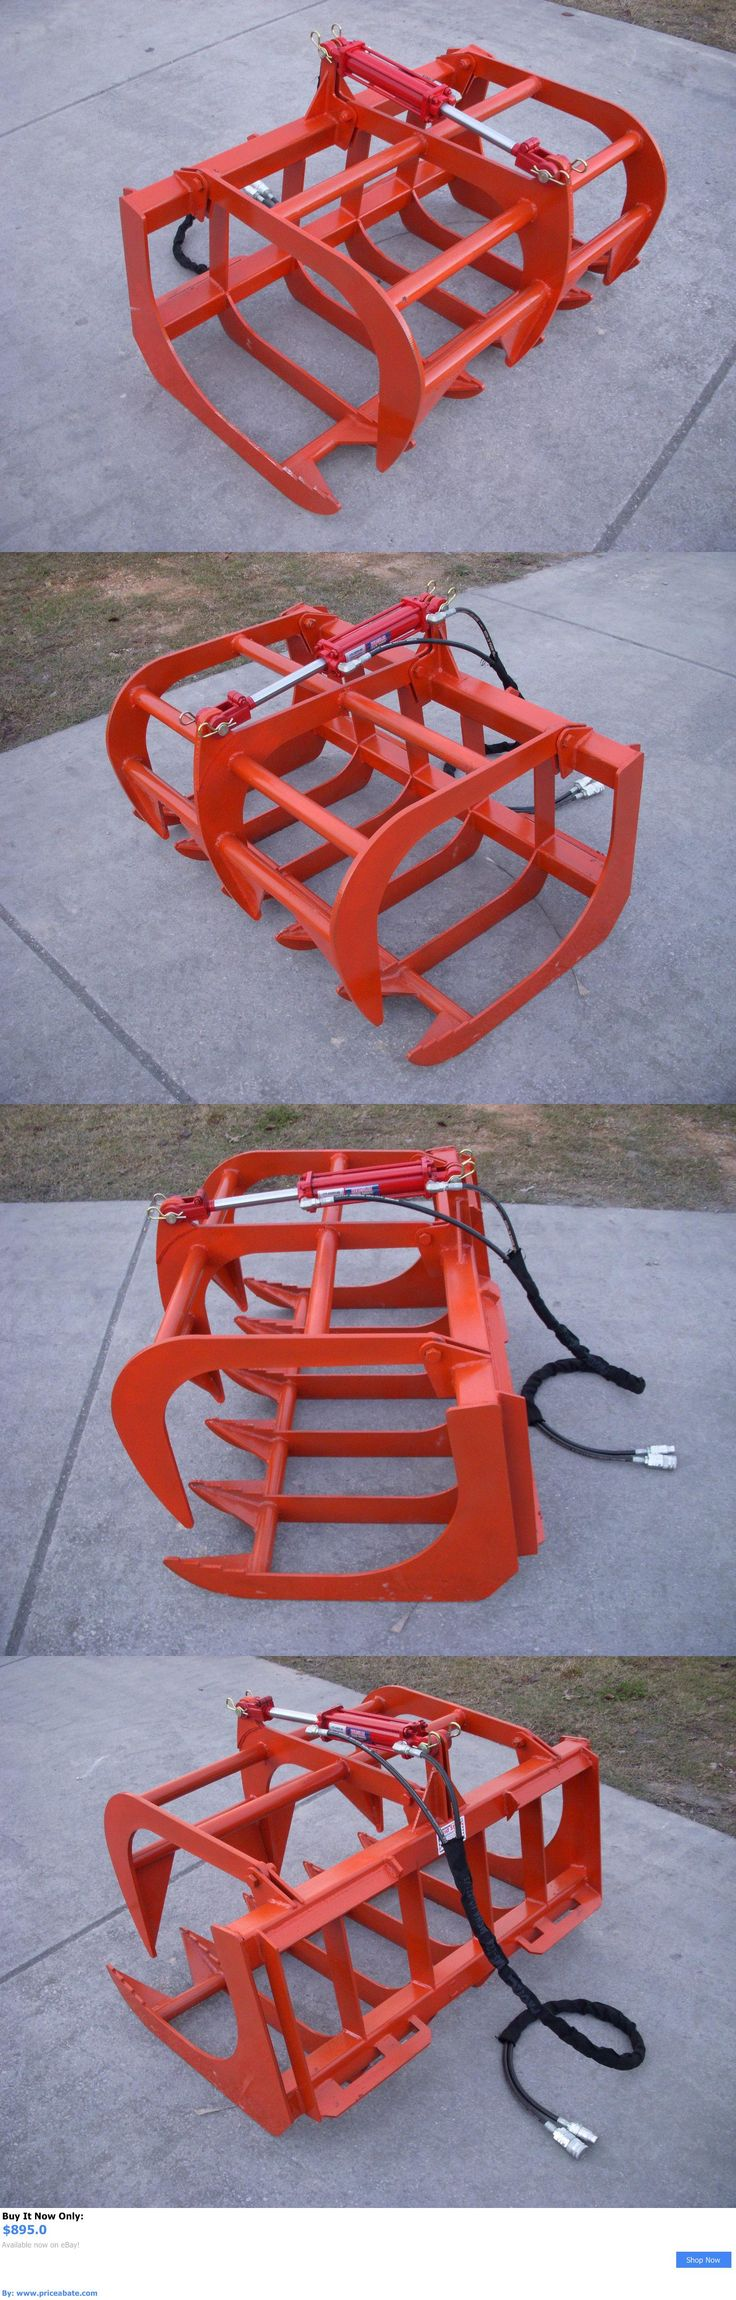 heavy equipment: Kubota Compact Tractor Attachment - 48 Root Rake Grapple Bucket - Free Shipping BUY IT NOW ONLY: $895.0 #priceabateheavyequipment OR #priceabate